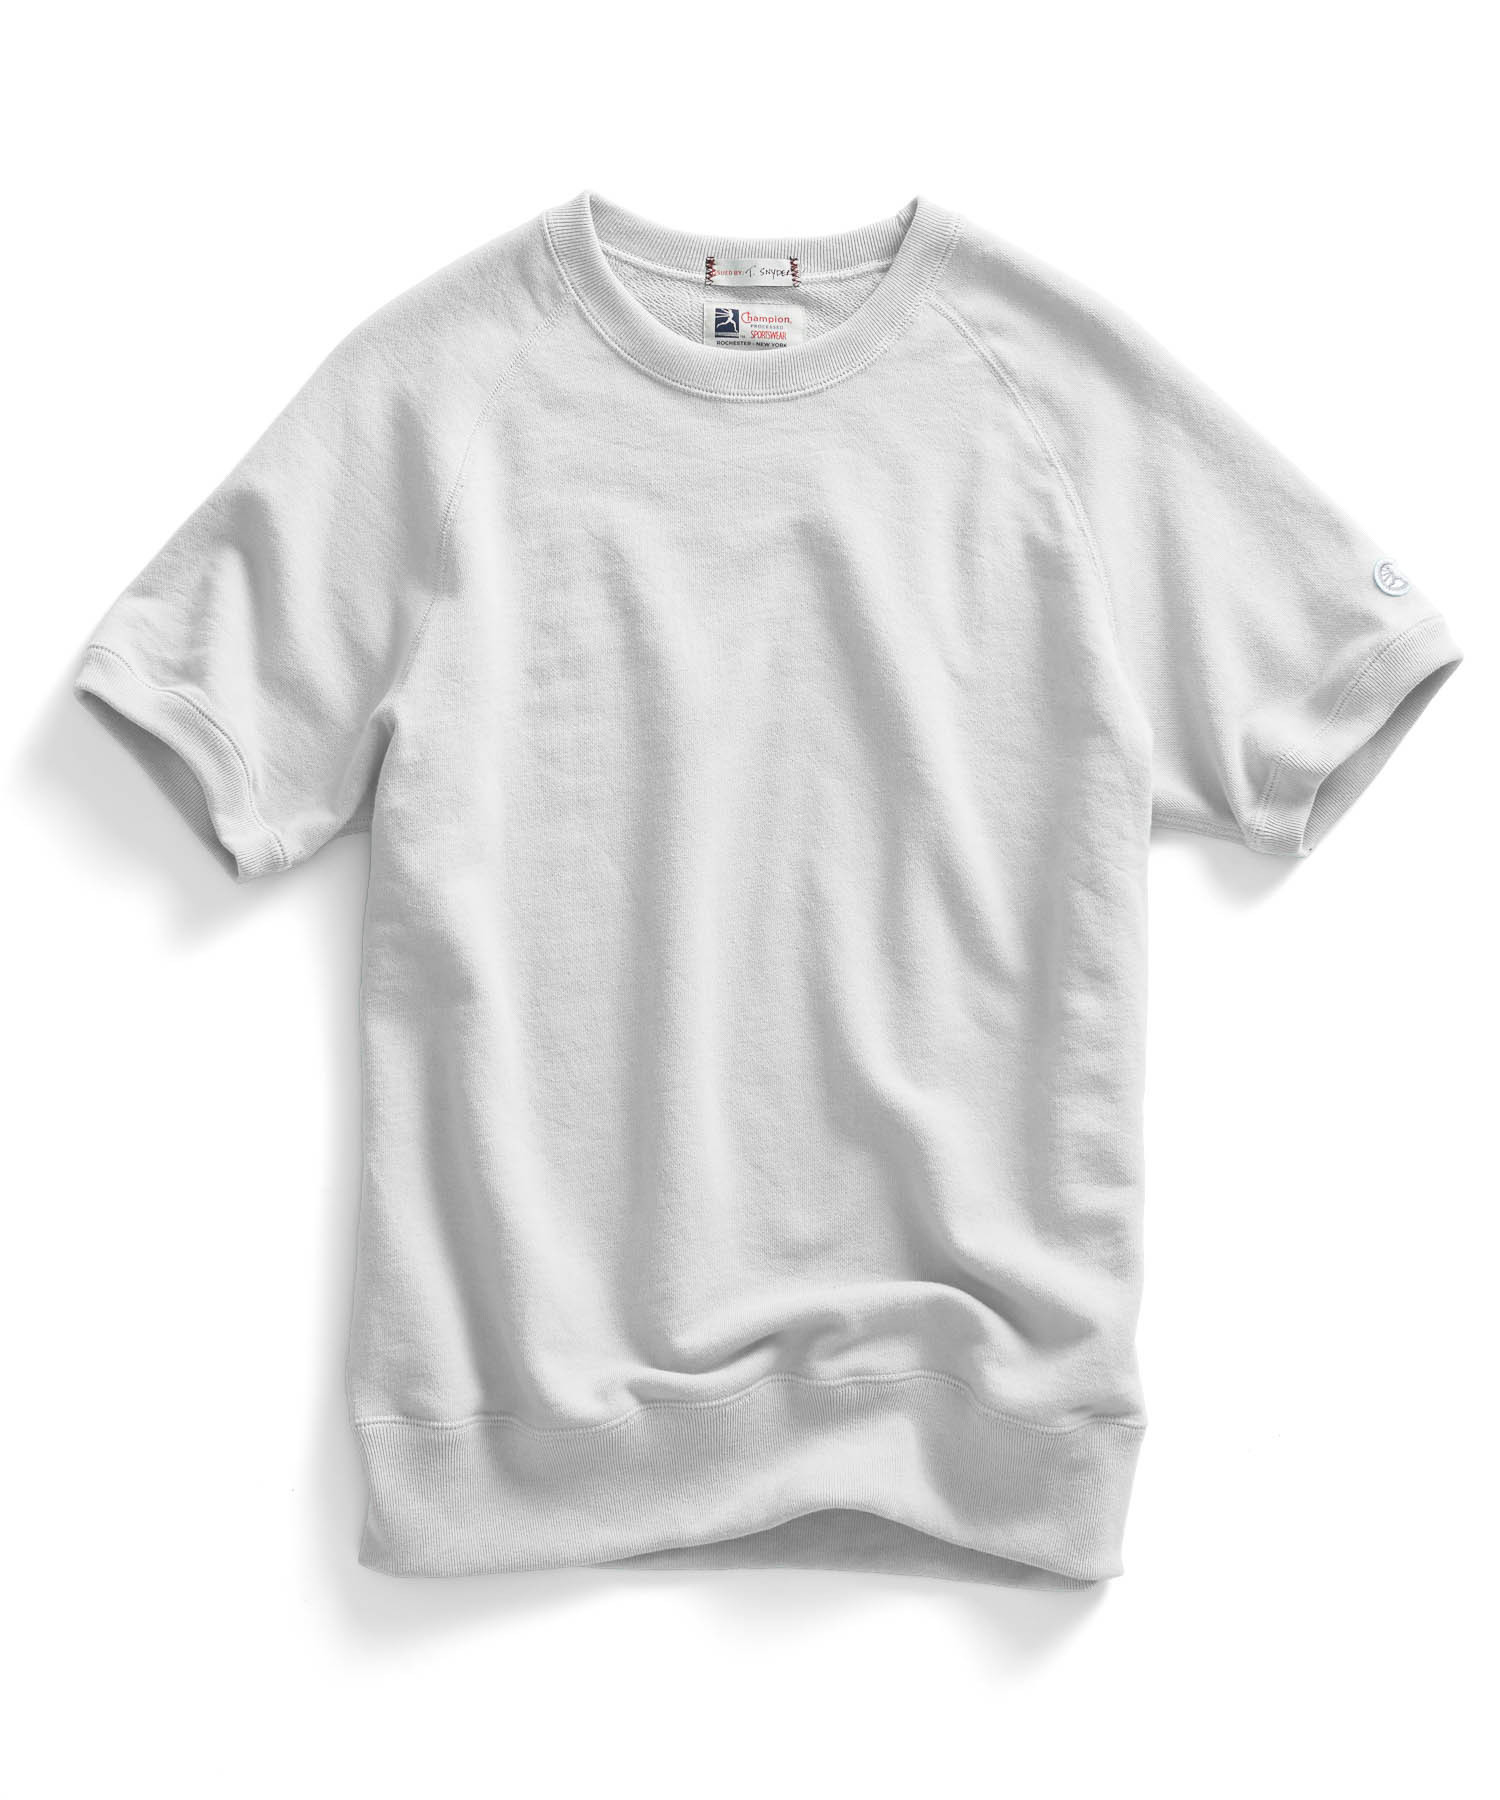 Todd snyder Short Sleeve Sweatshirt In White in White for Men | Lyst